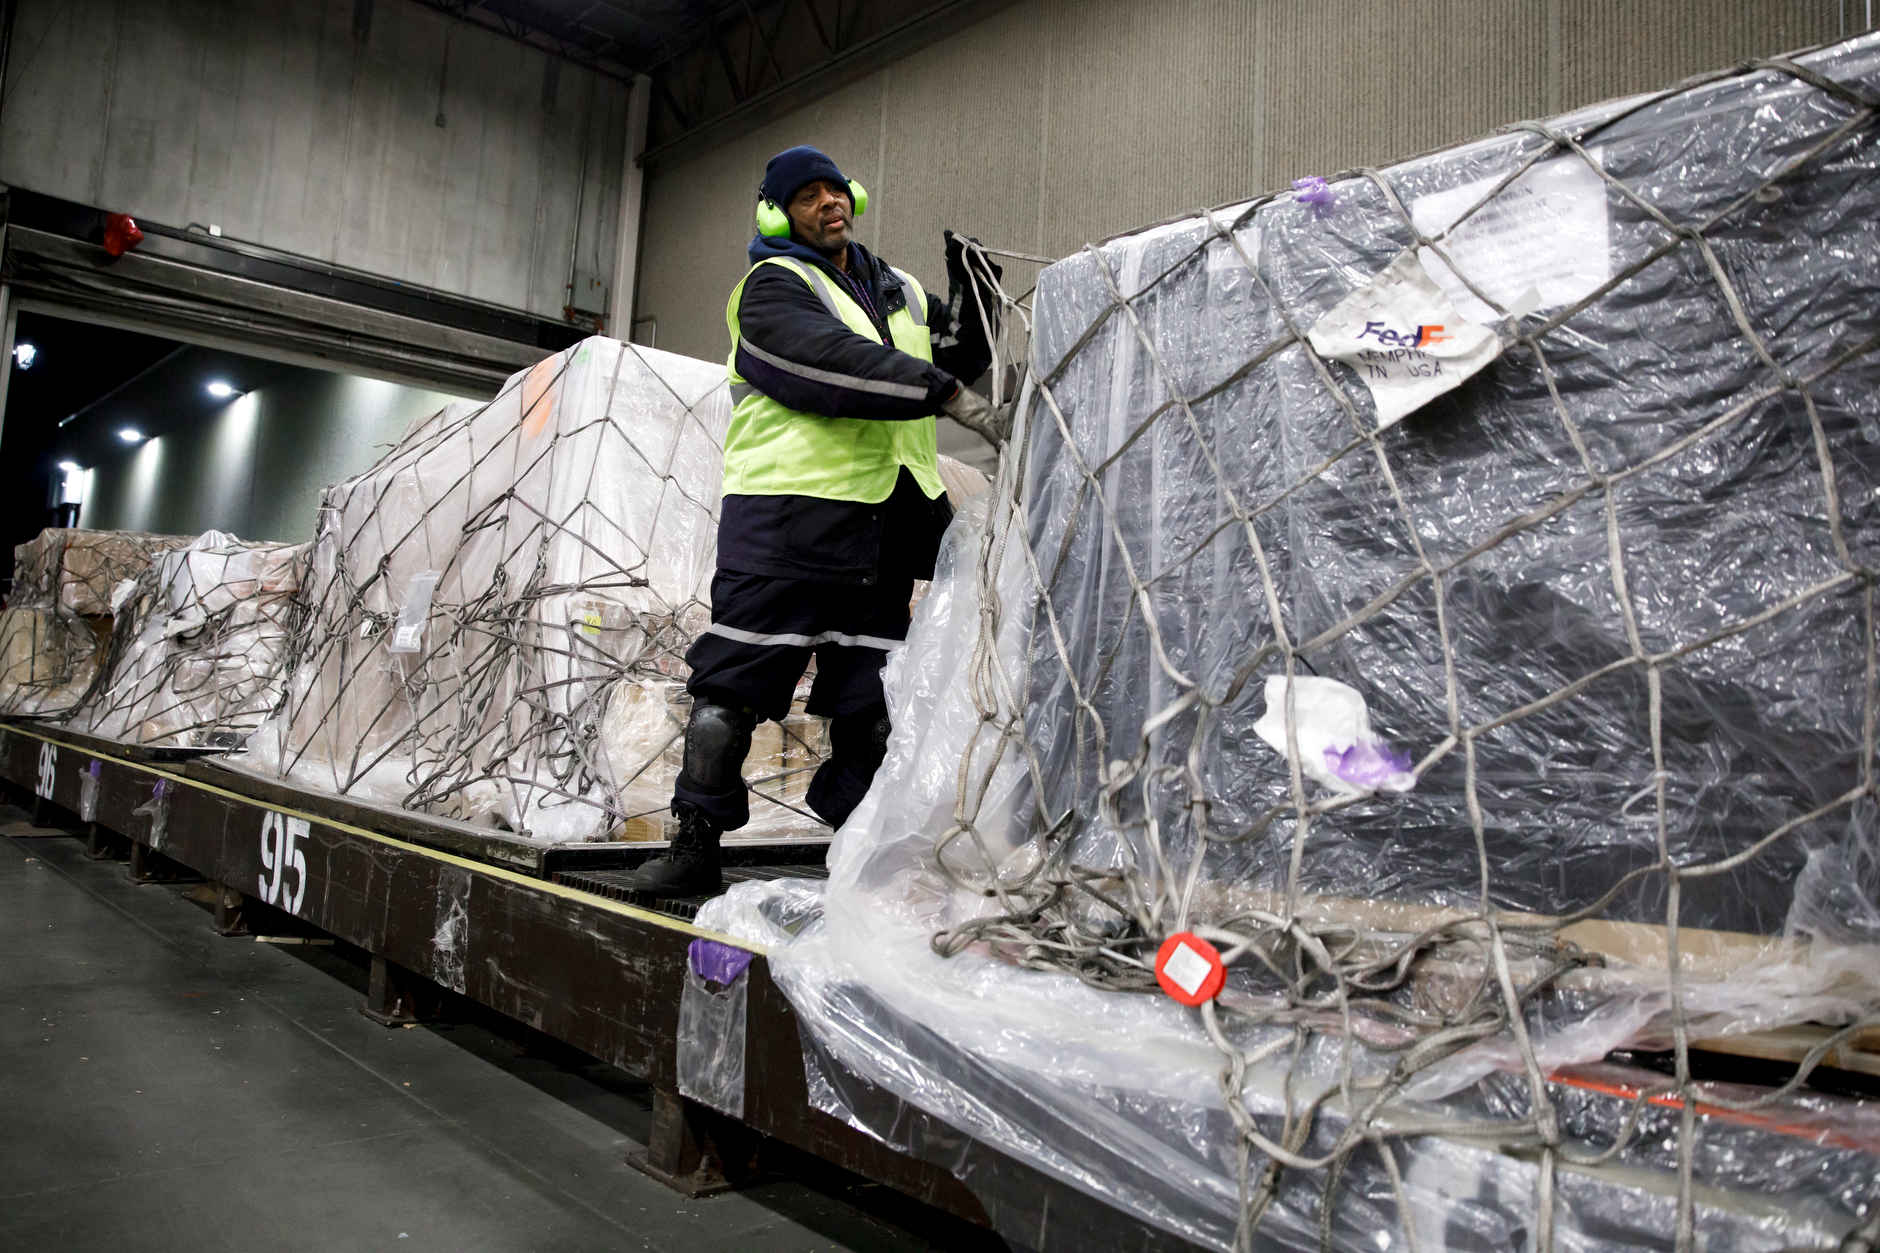 James Wilson, a FedEx material handler, secures cargo netting over a stack of packages at the FedEx Express Hub in Indianapolis in the early morning hours of Wednesday, Feb. 27, 2019. (James Brosher for The Wall Street Journal)